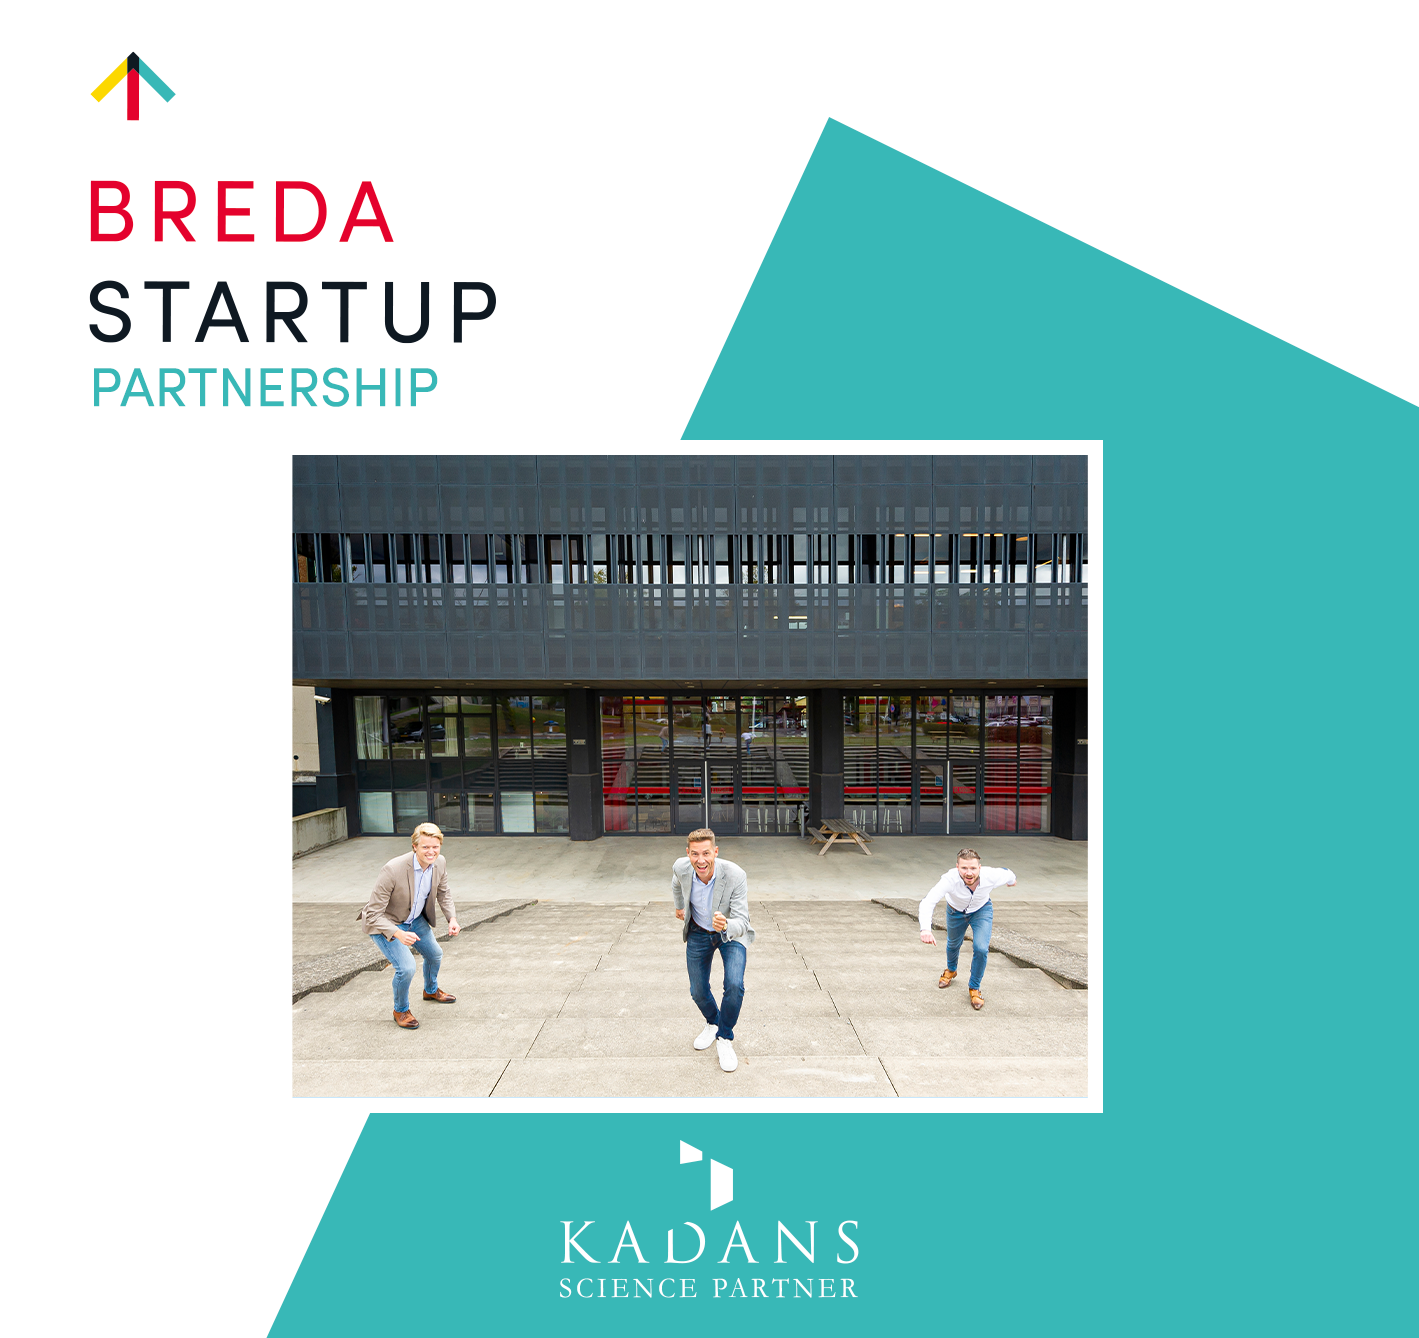 Breda Startup Partnership Kadans Science Partner